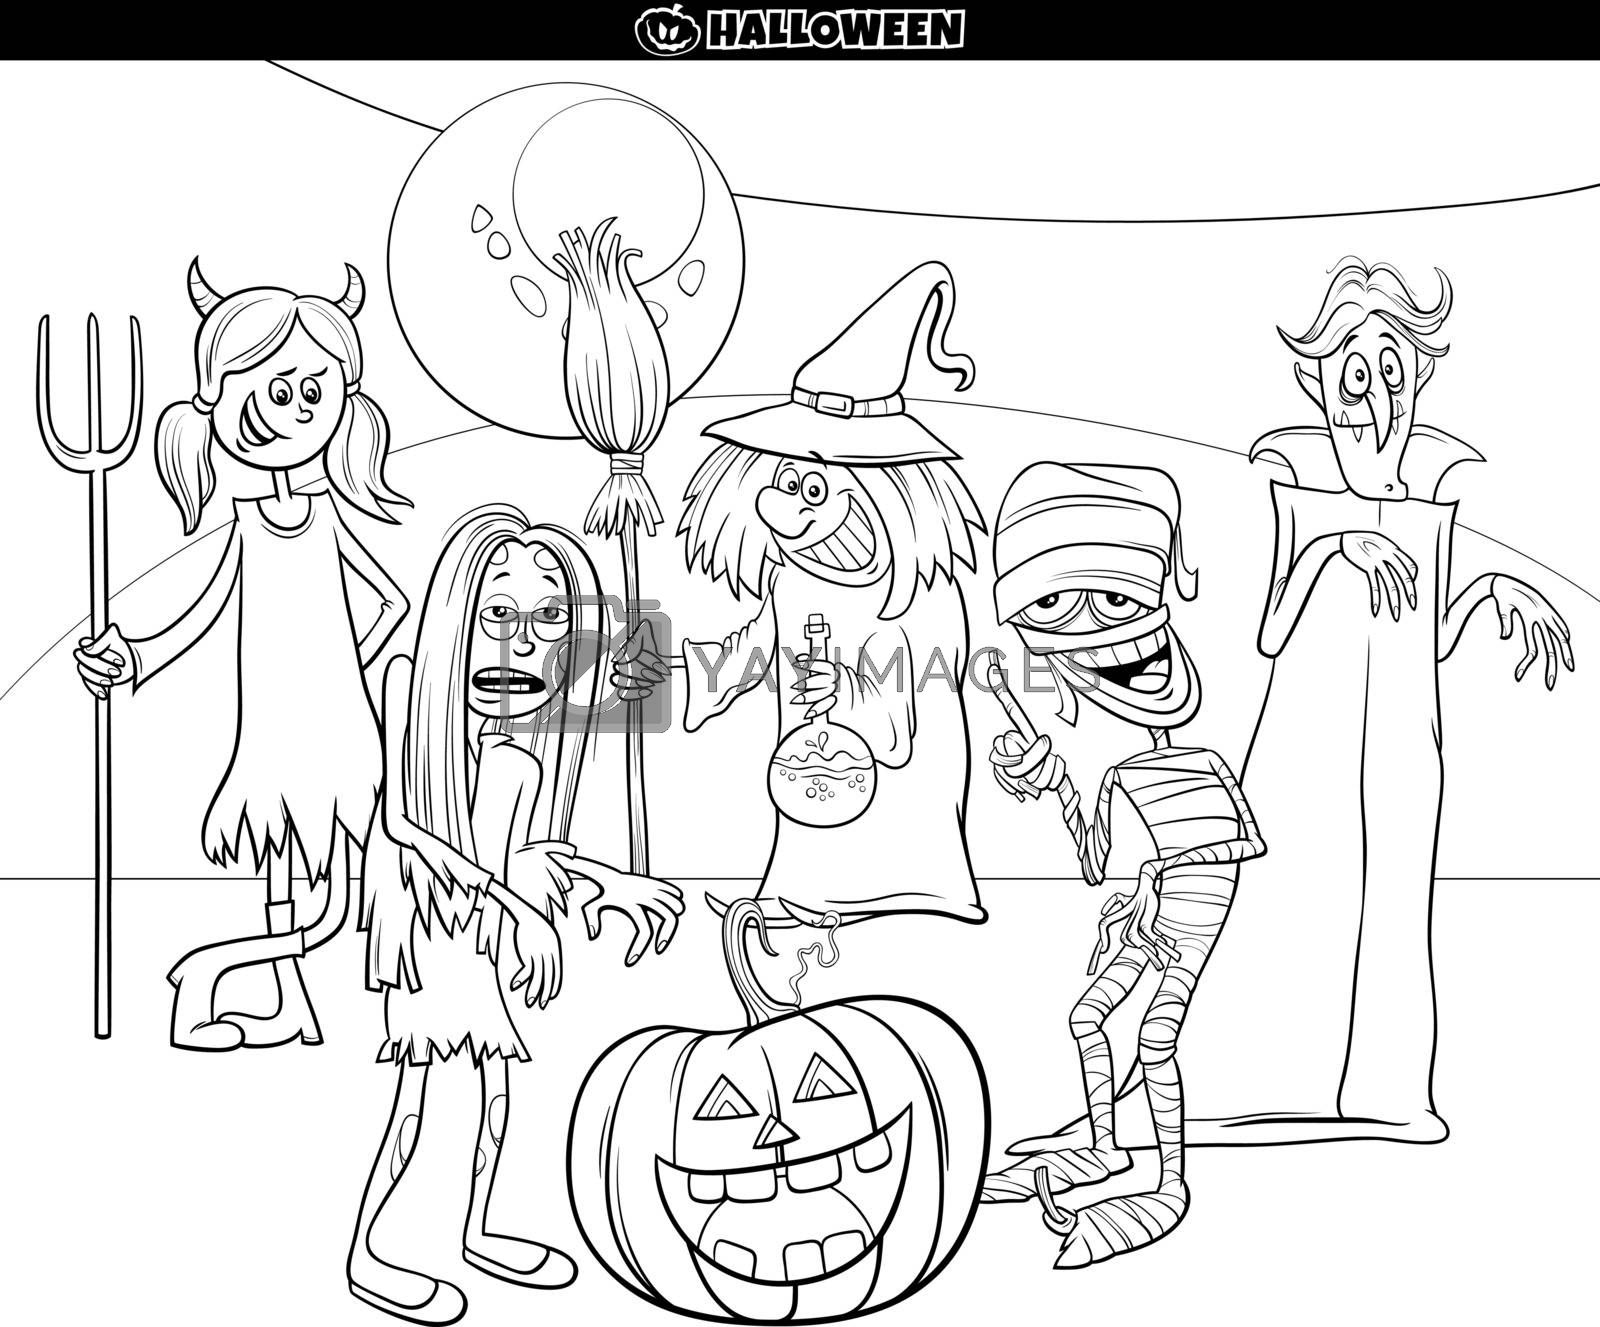 Black and White Cartoon Illustration of Halloween Holiday Comic Characters Group Coloring Book Page